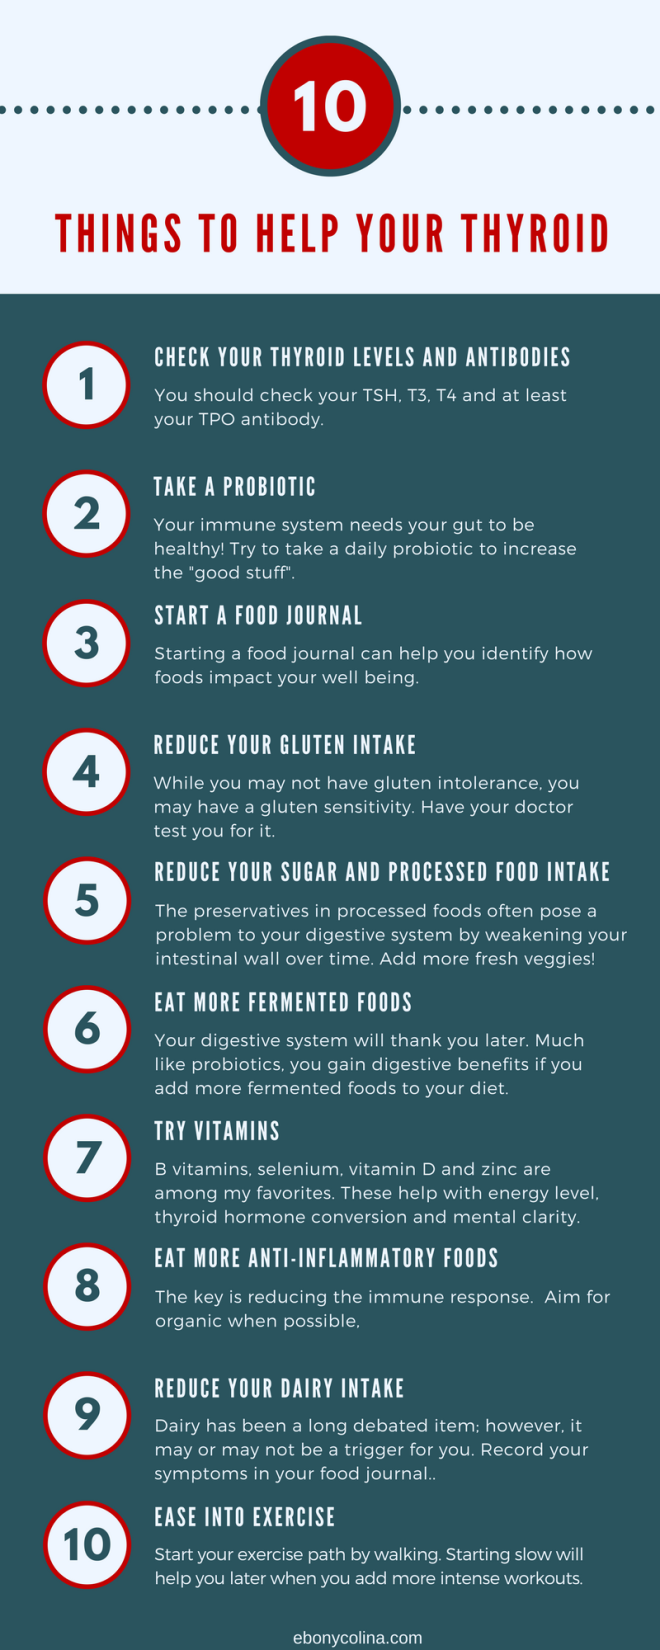 Things to help your thyroid-2